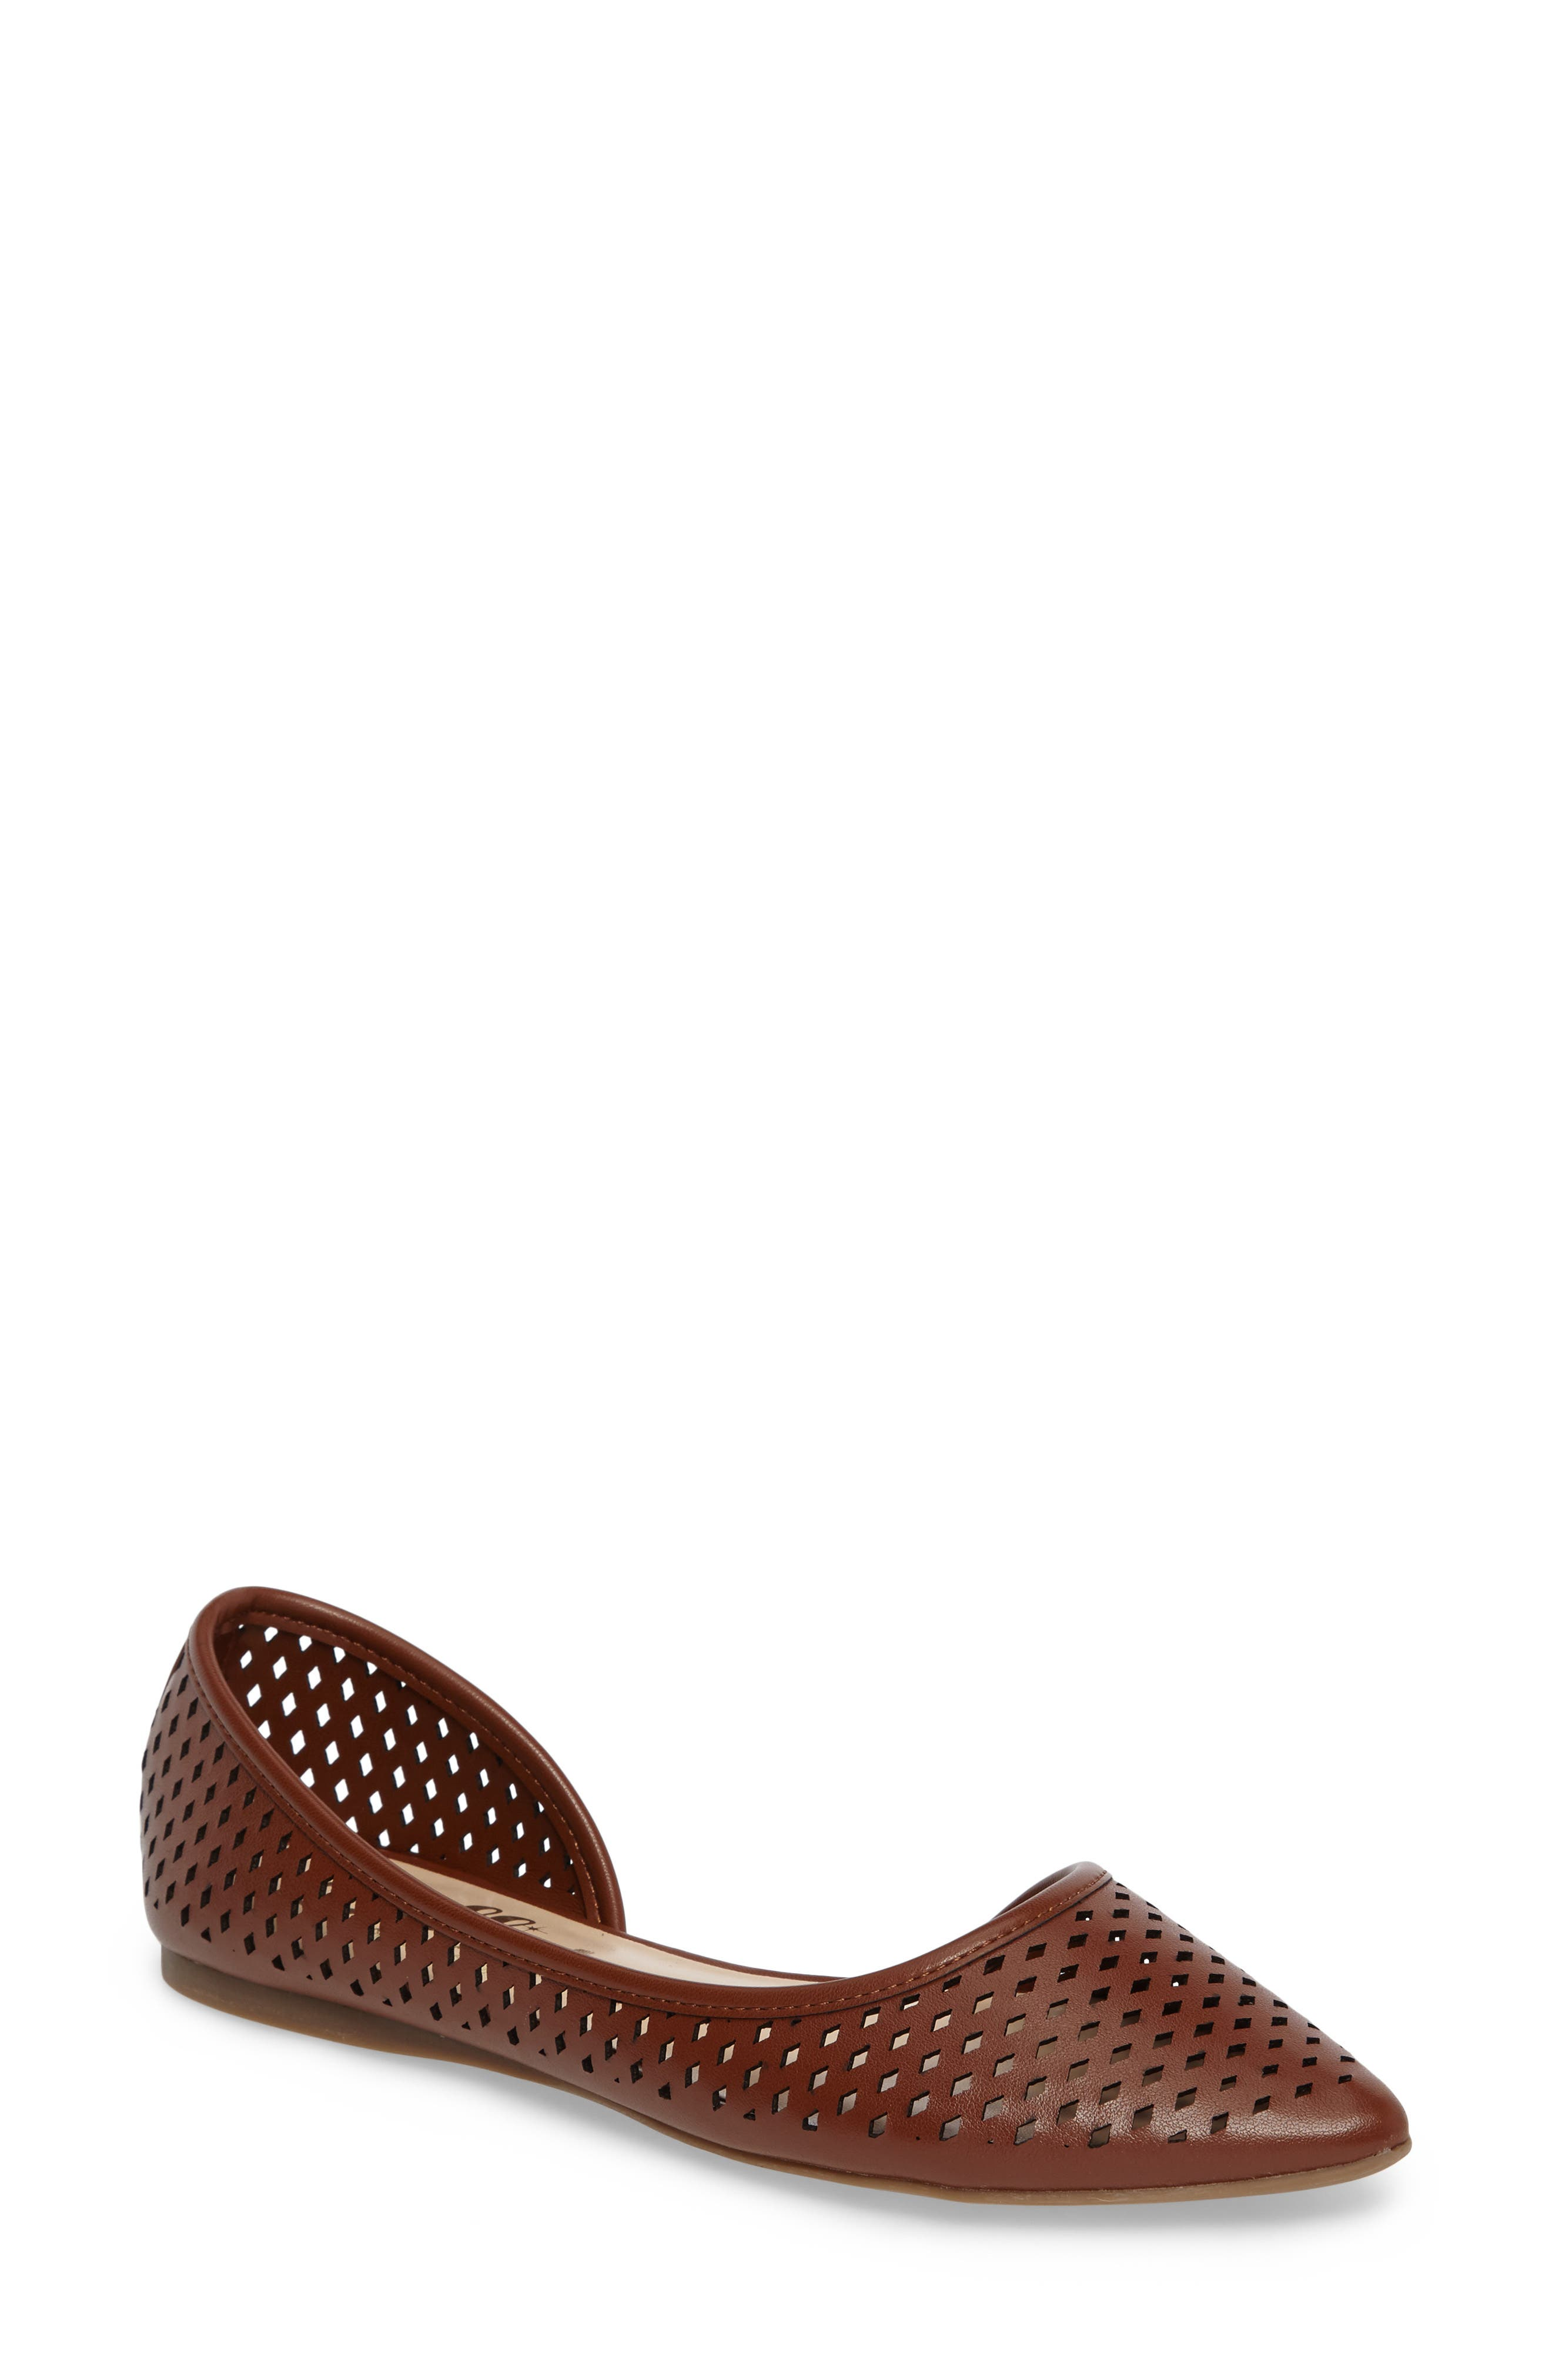 Swiftye Half d'Orsay Flat,                         Main,                         color, Tan Synthetic Leather